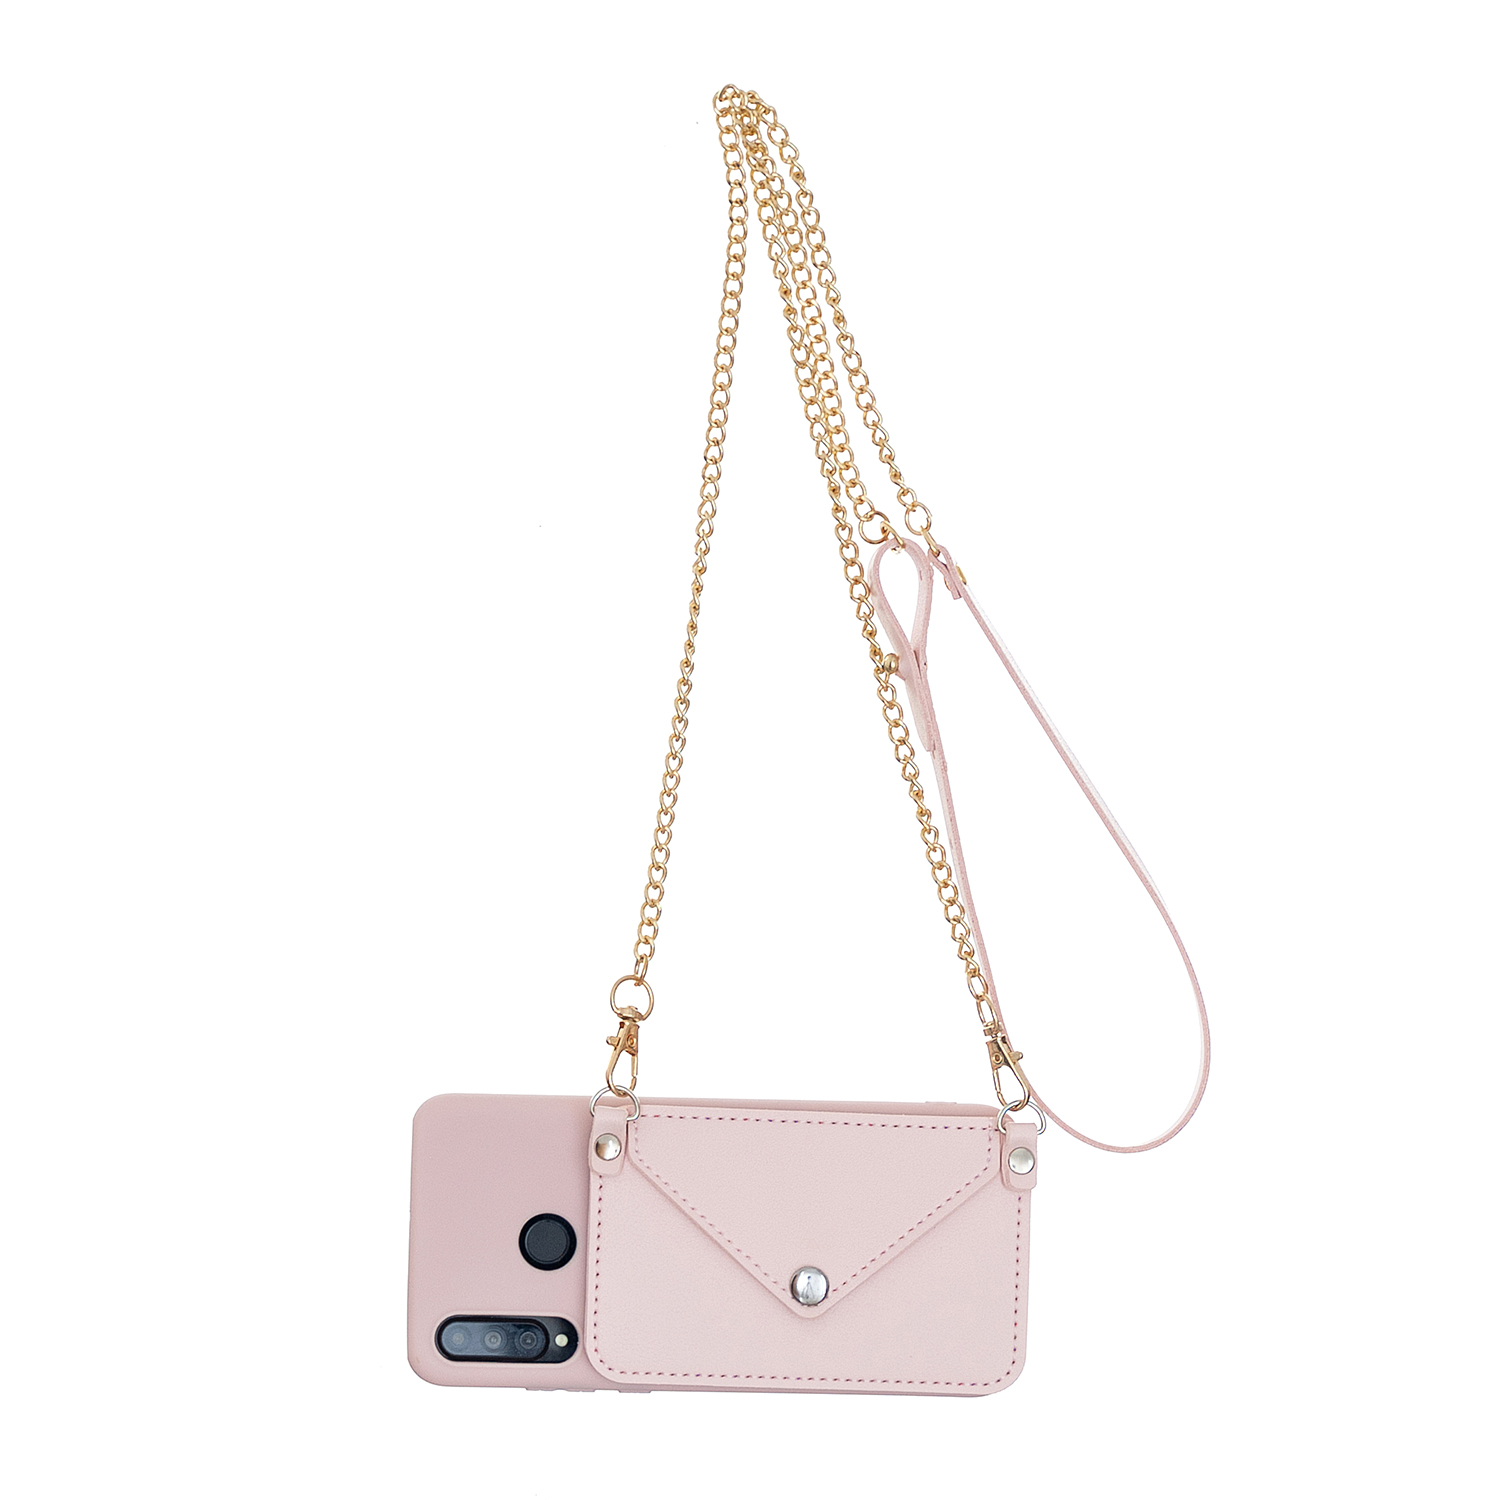 For HUAWEI P30/P30 Lite/P30 Pro Mobile Phone Cover with Pu Leather Card Holder + Hand Rope + Straddle Rope Pink